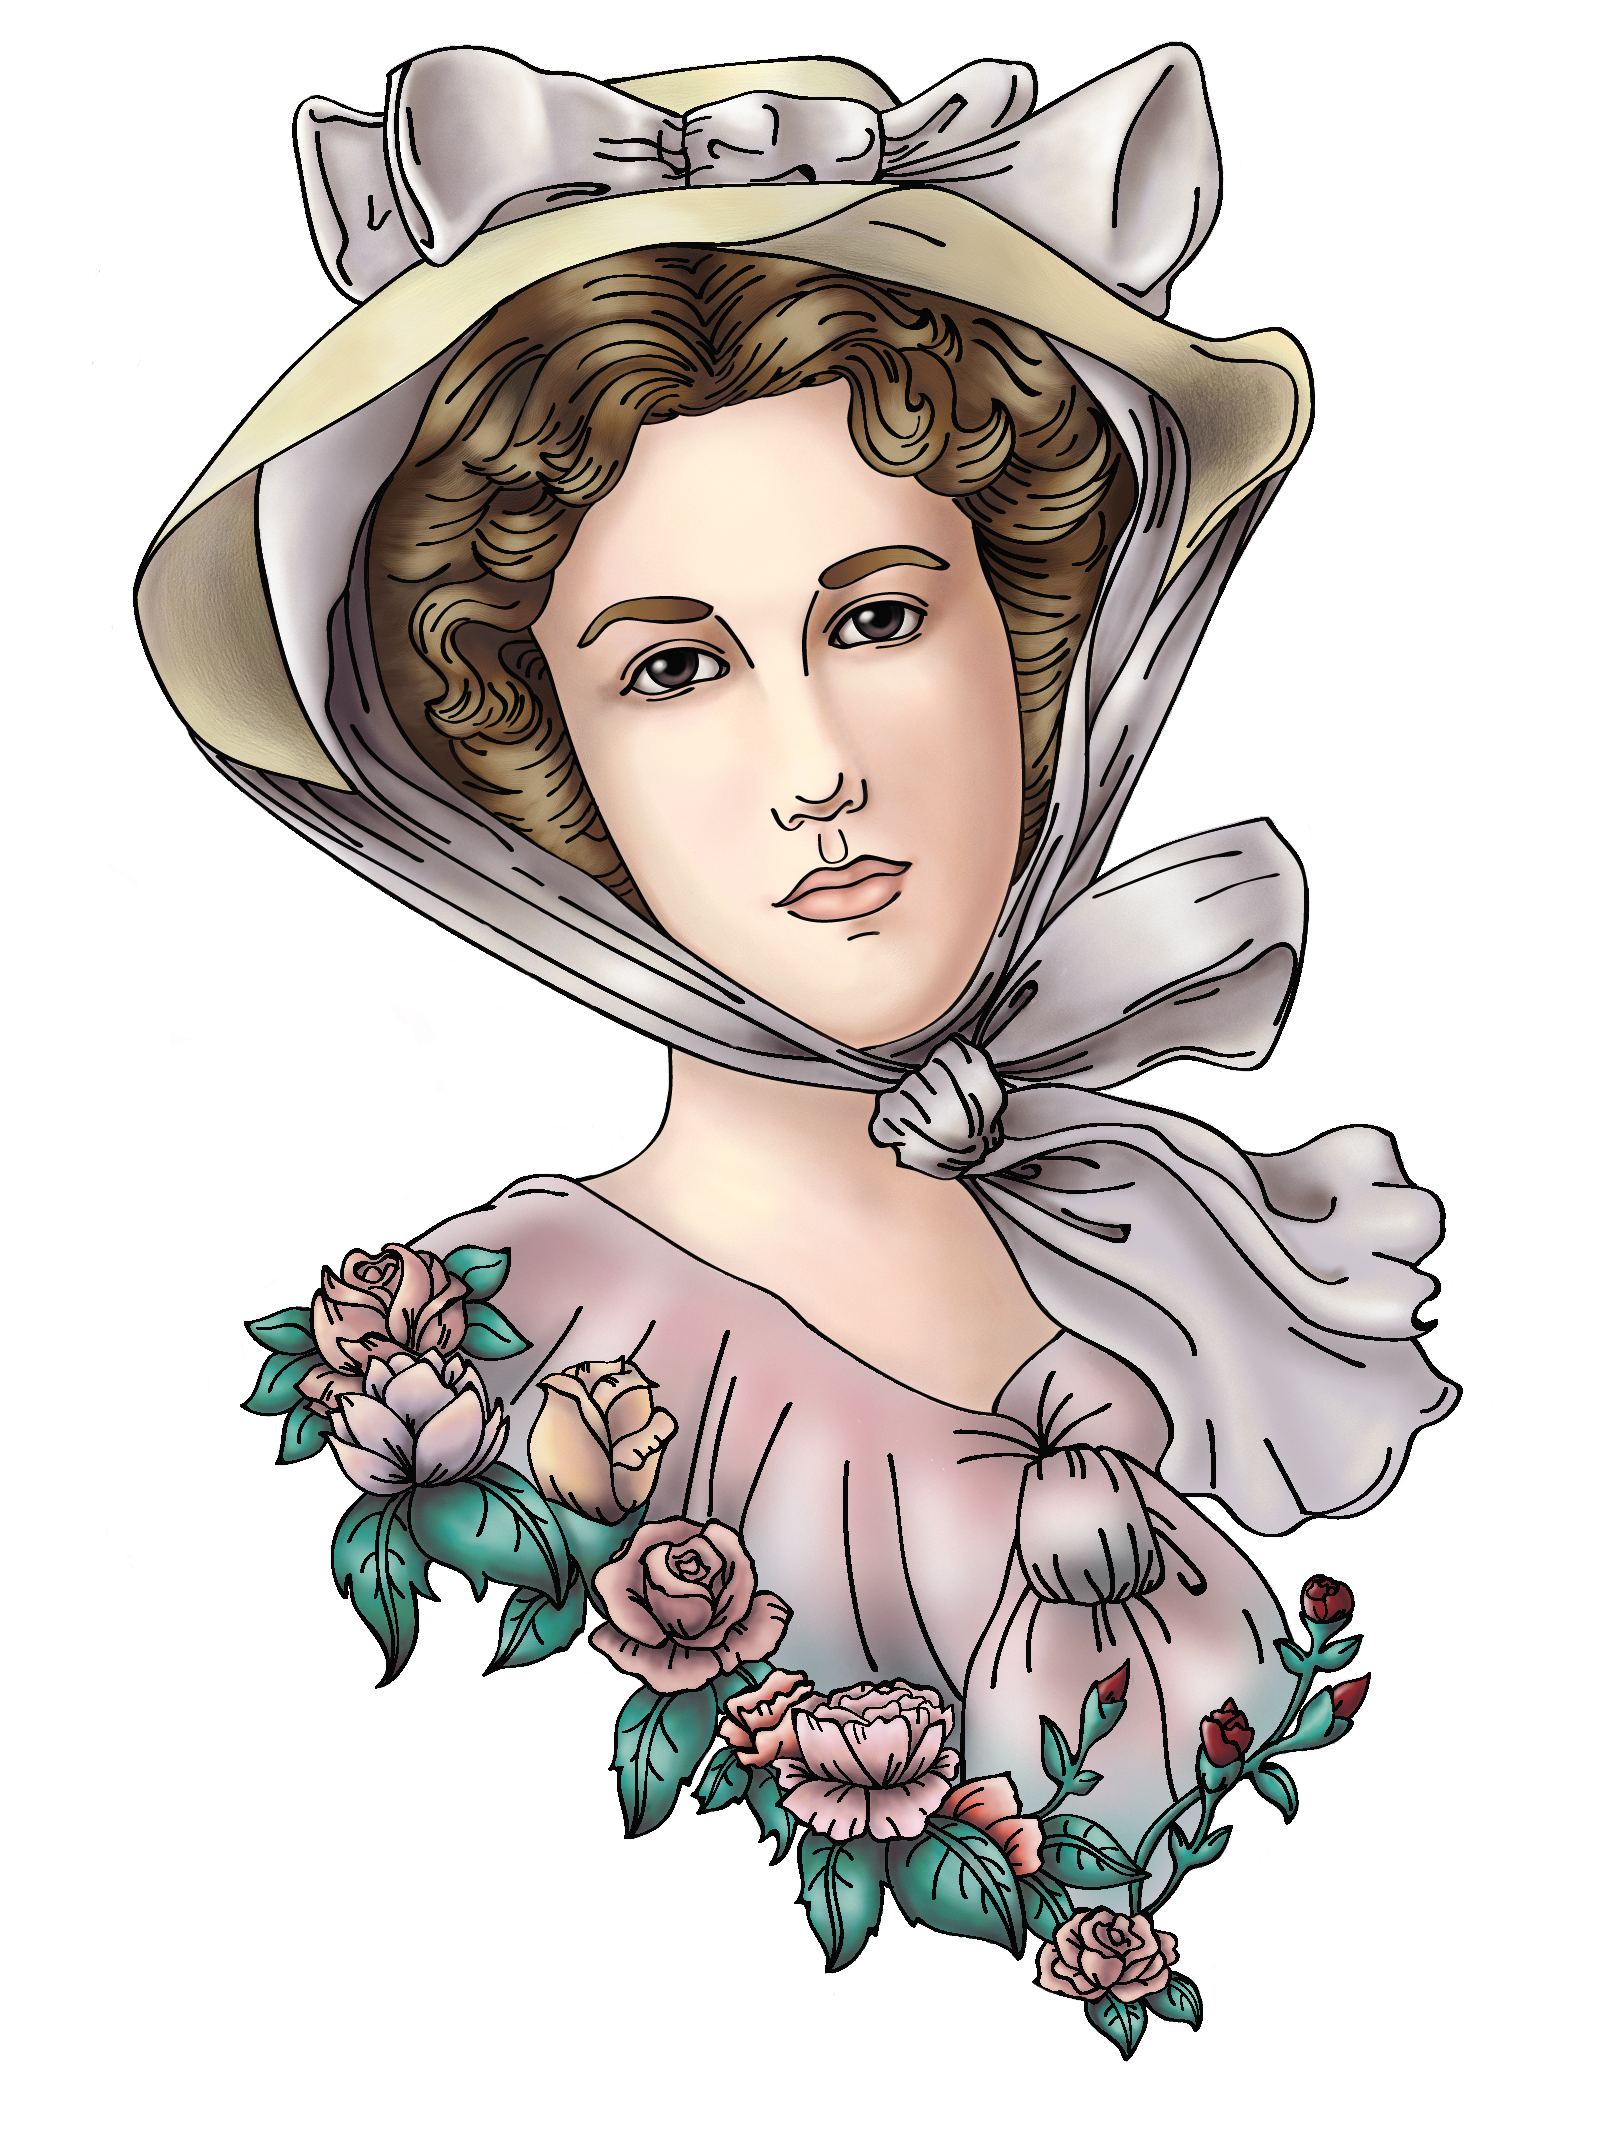 Tattoo desing based on. France clipart elegant woman